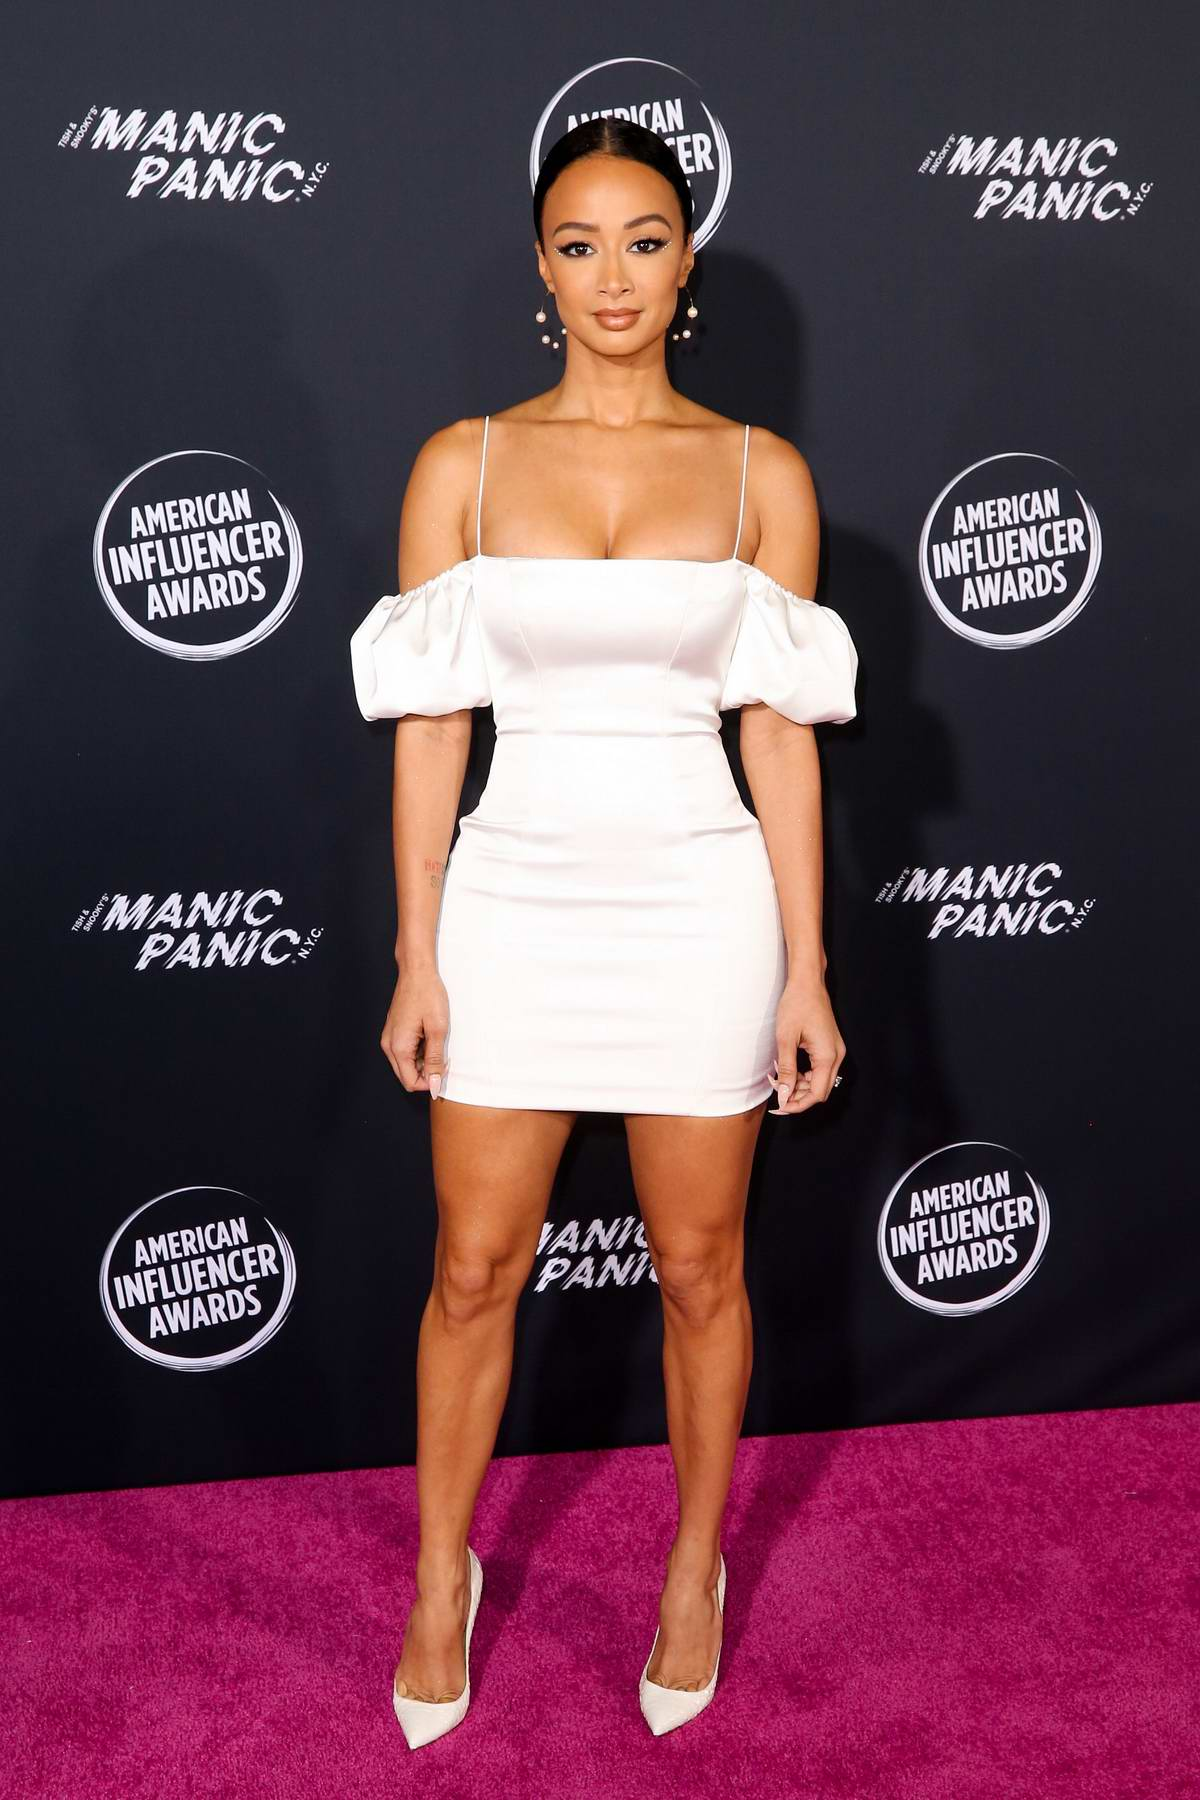 Draya Michele attends the 2nd Annual American Influencer Awards at The Dolby Theatre in Hollywood, California